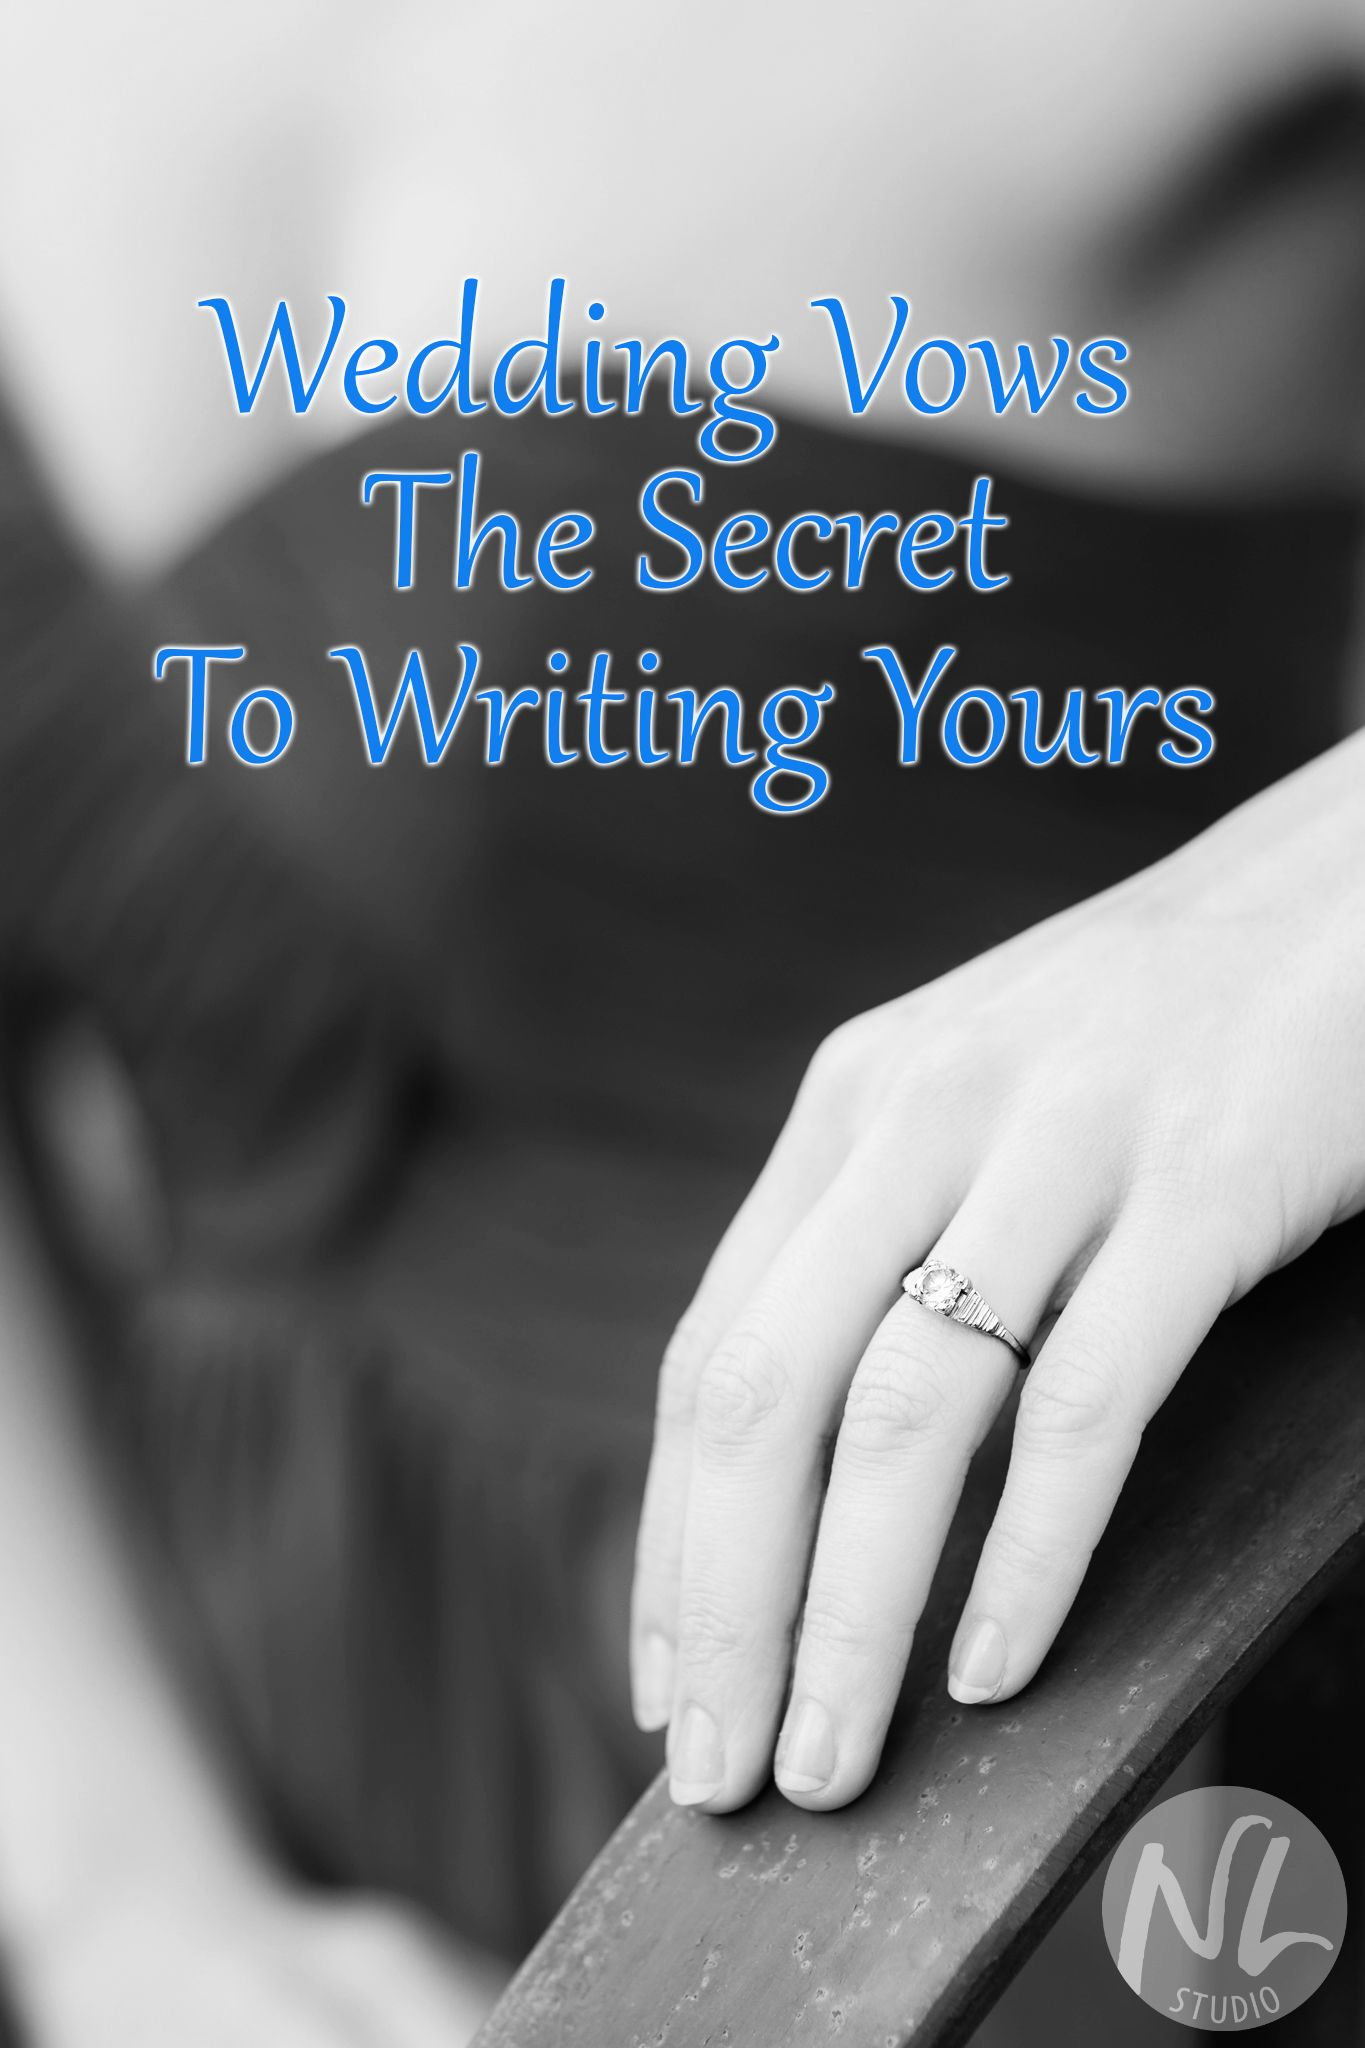 Writing wedding vows can be daunting, but this guide on